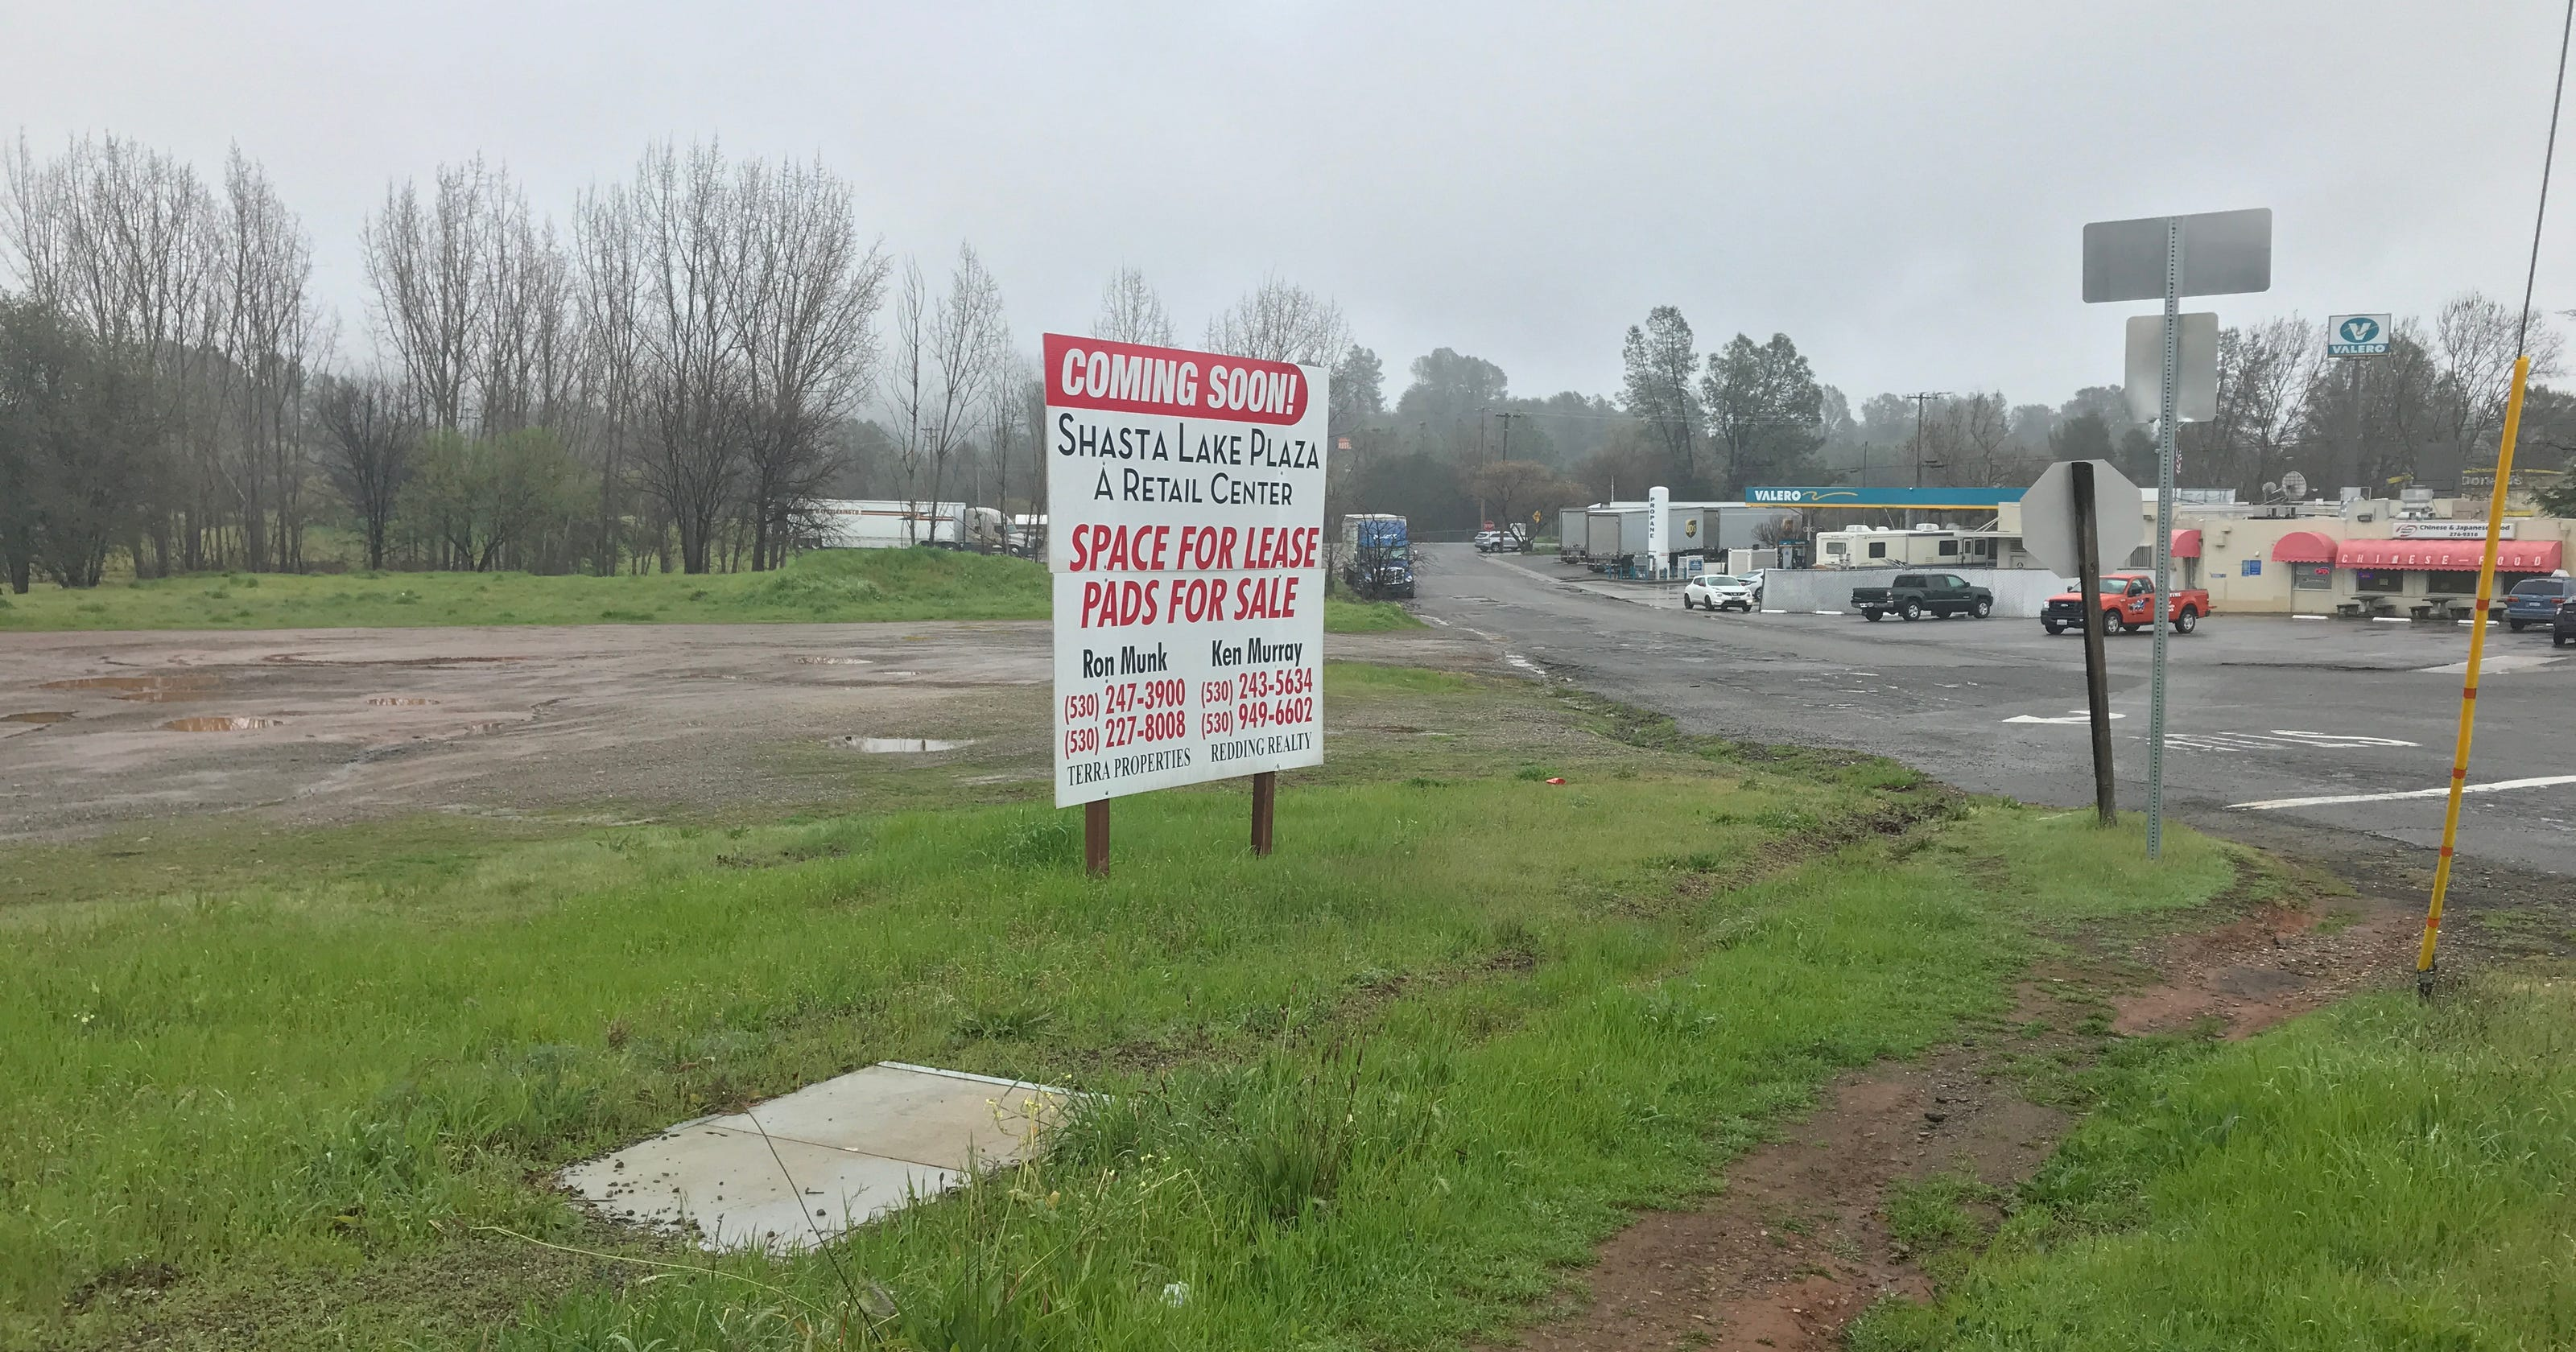 rancheria to buy land in shasta lake talk of plans for hotel